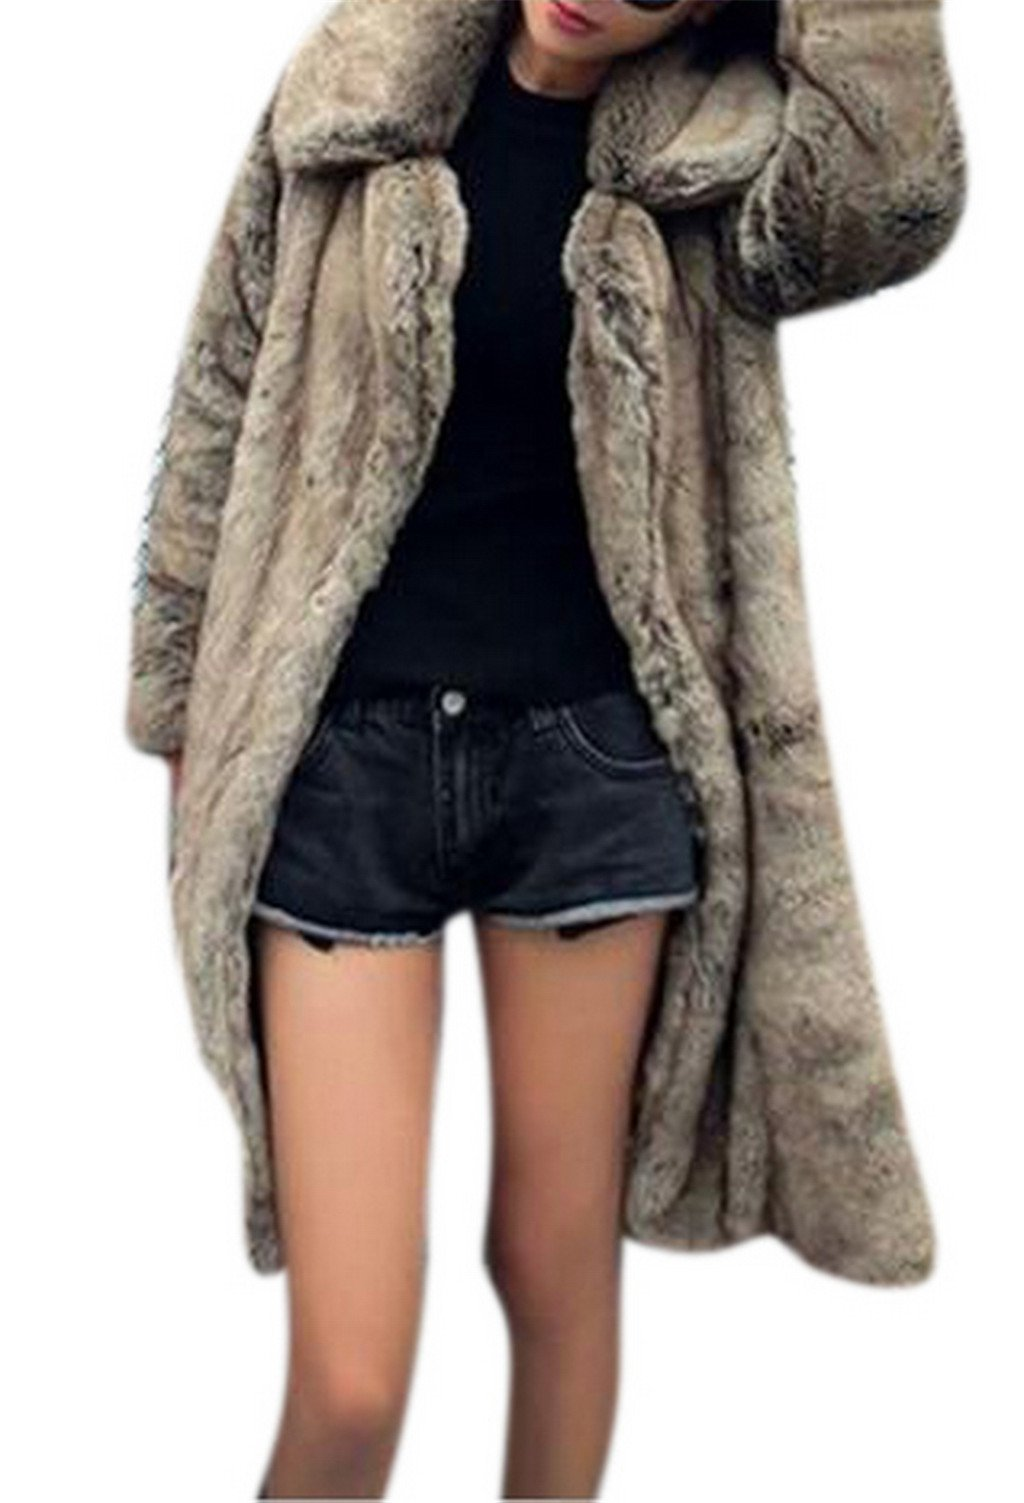 Women's Winter Warm Lapel Long Faux Fur Overcoat Jacket Coat Outerwear, Feature, US 6-8/Tag L